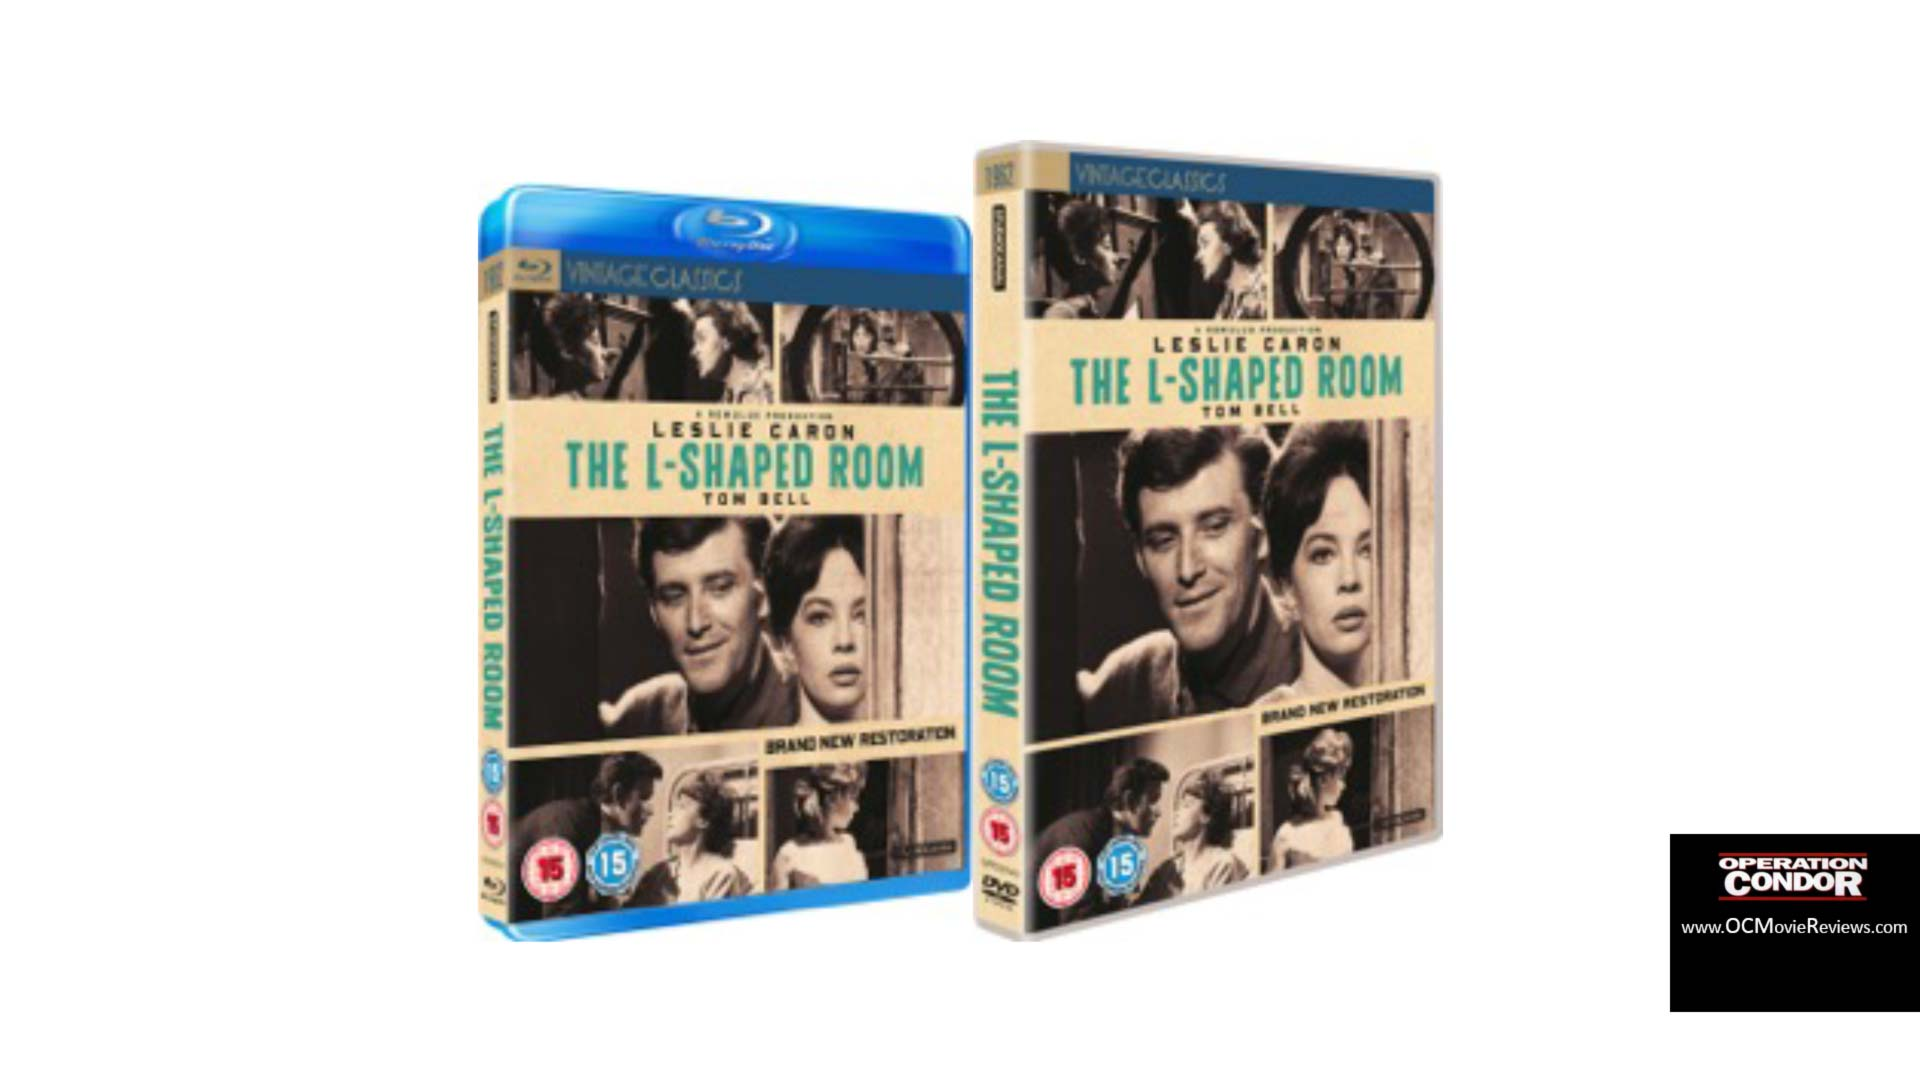 The L-Shaped Room Blu-Ray Review – British Life In The 60's - OC Movie Reviews - Movie Reviews, Movie News, Documentary Reviews, Short Films, Short Film Reviews, Trailers, Movie Trailers, Interviews, film reviews, film news, hollywood, indie films, documentaries